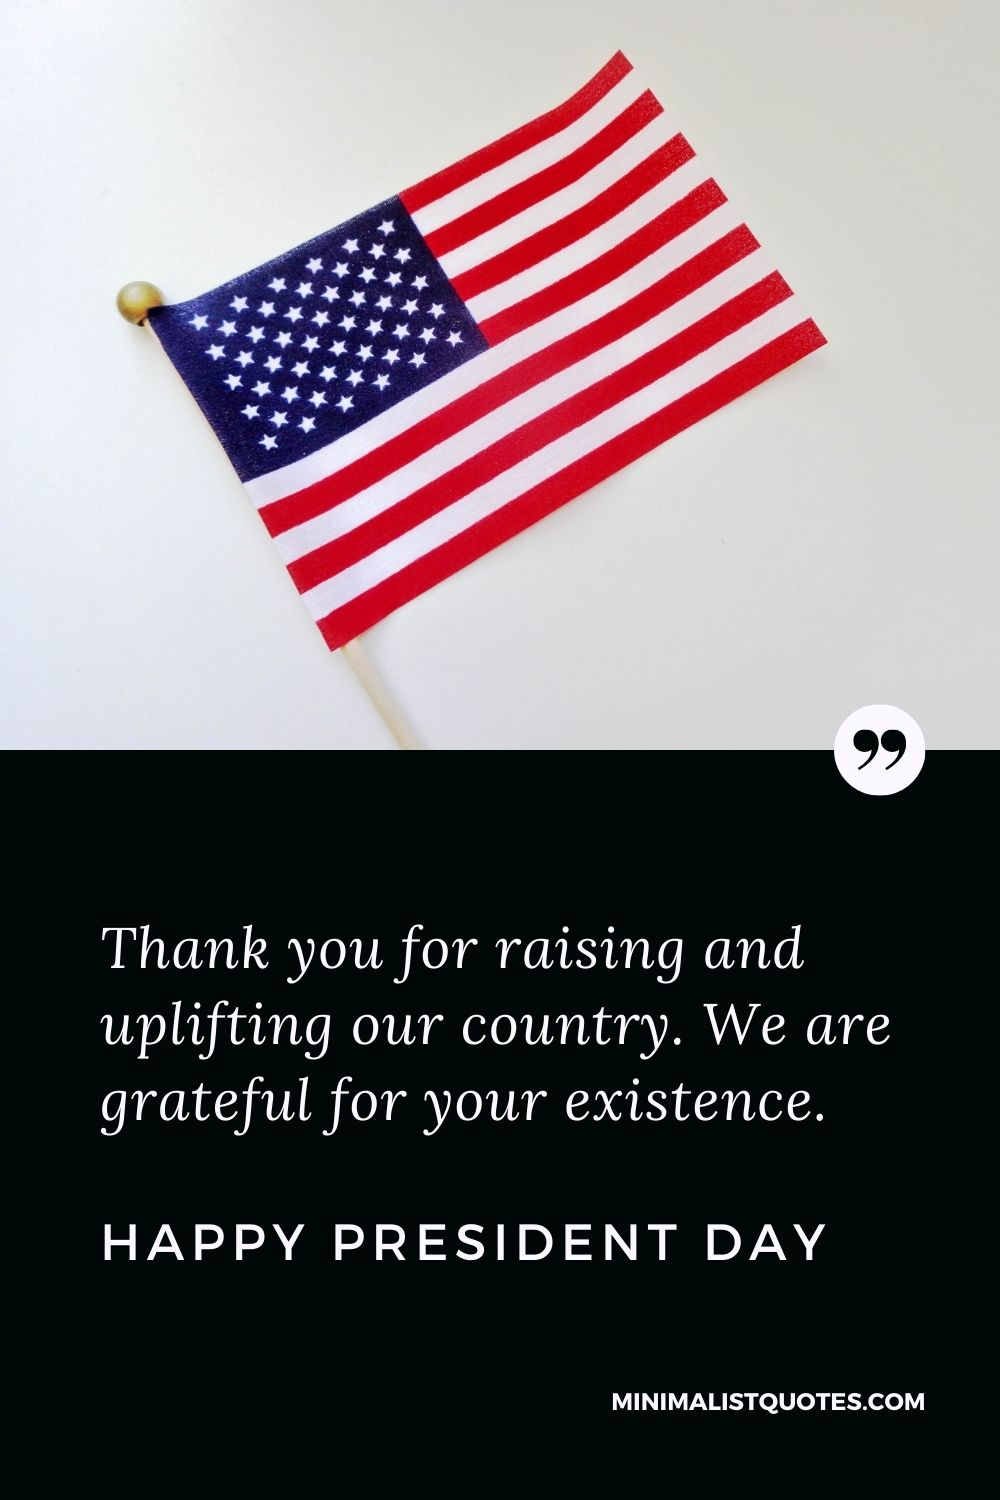 President Day Quote, Wish & Message With Image: Thank you for raising and uplifting our country. We are grateful for your existence. Happy President Day!